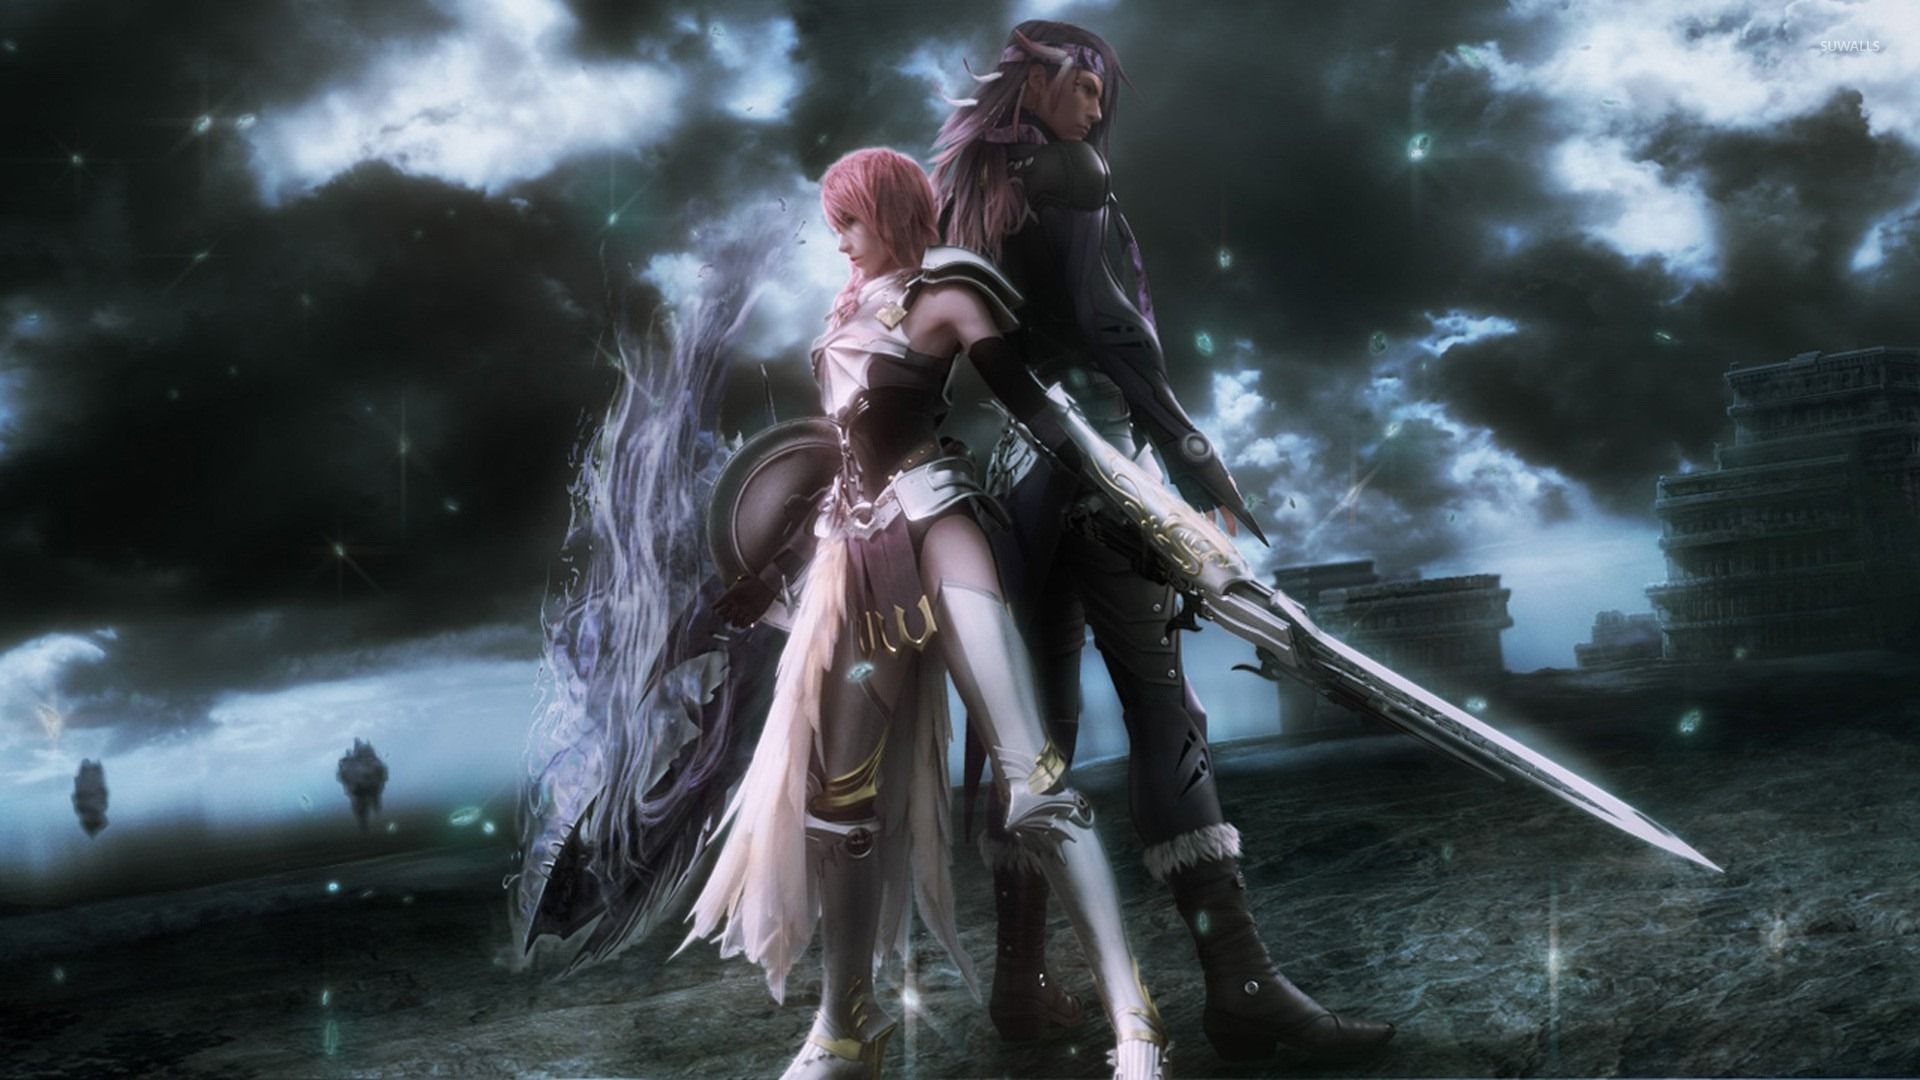 Final Fantasy Xiii Wallpapers Top Free Final Fantasy Xiii